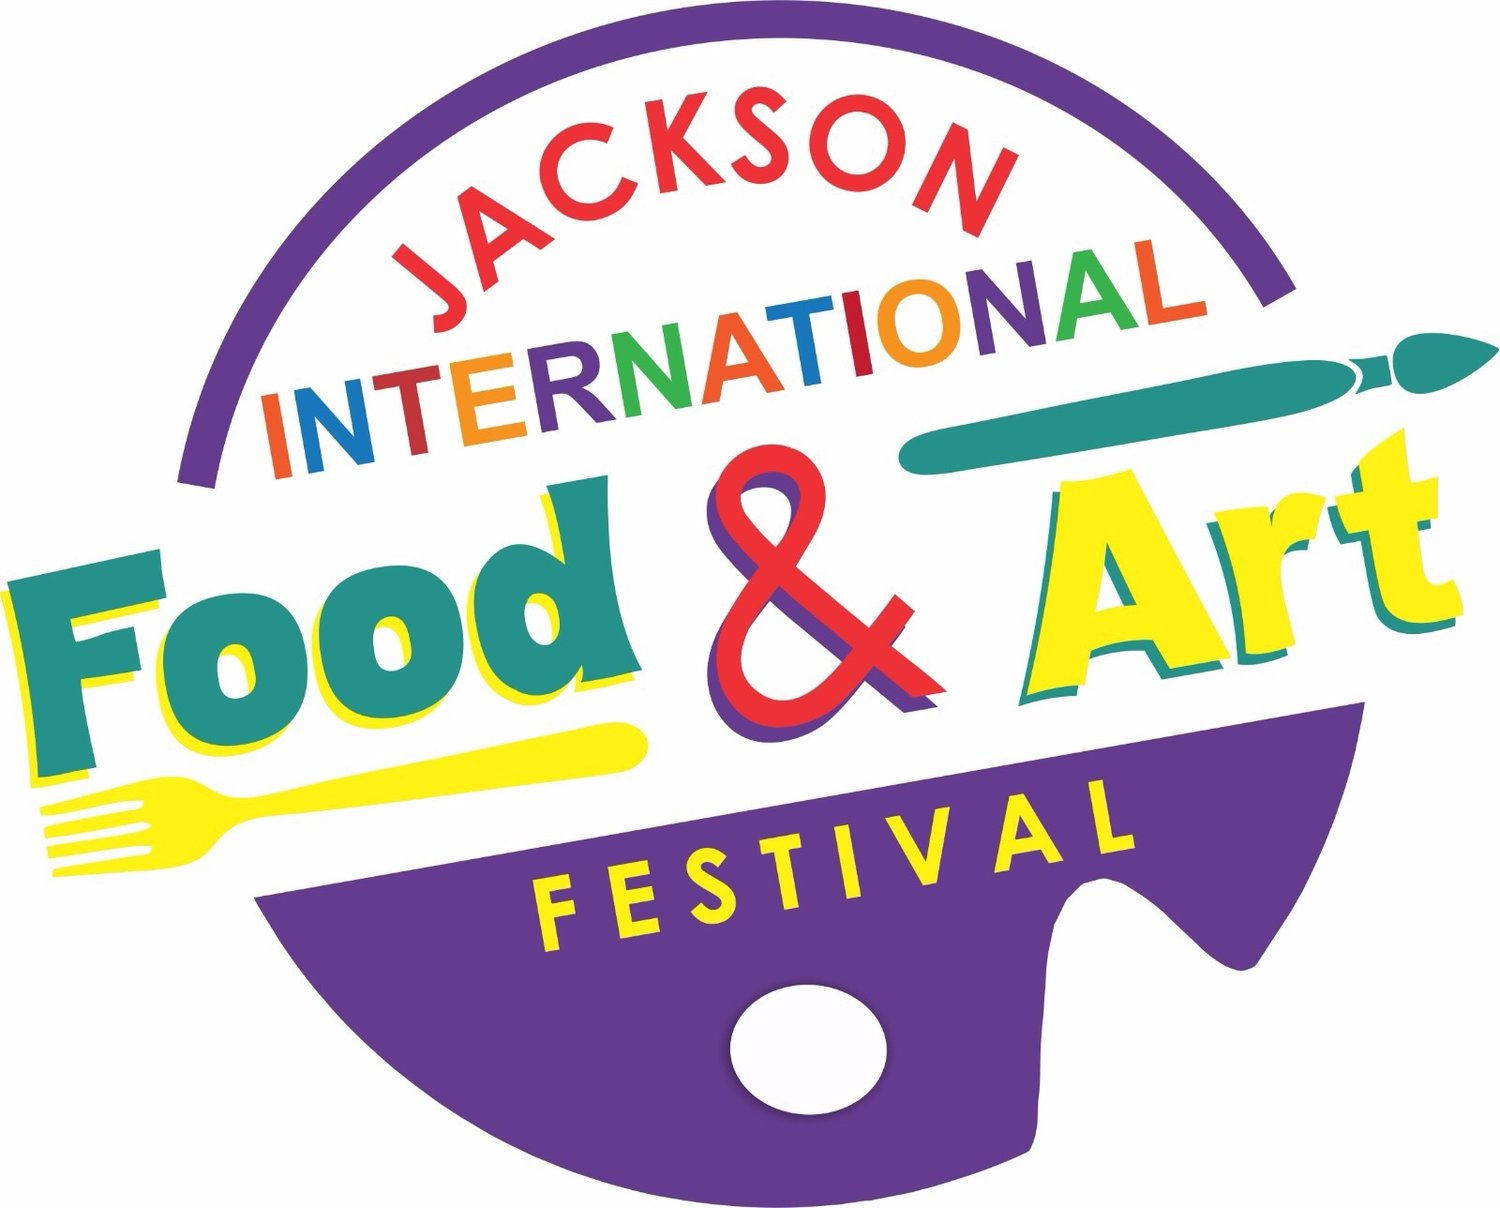 Jackson International Food and Art Festival